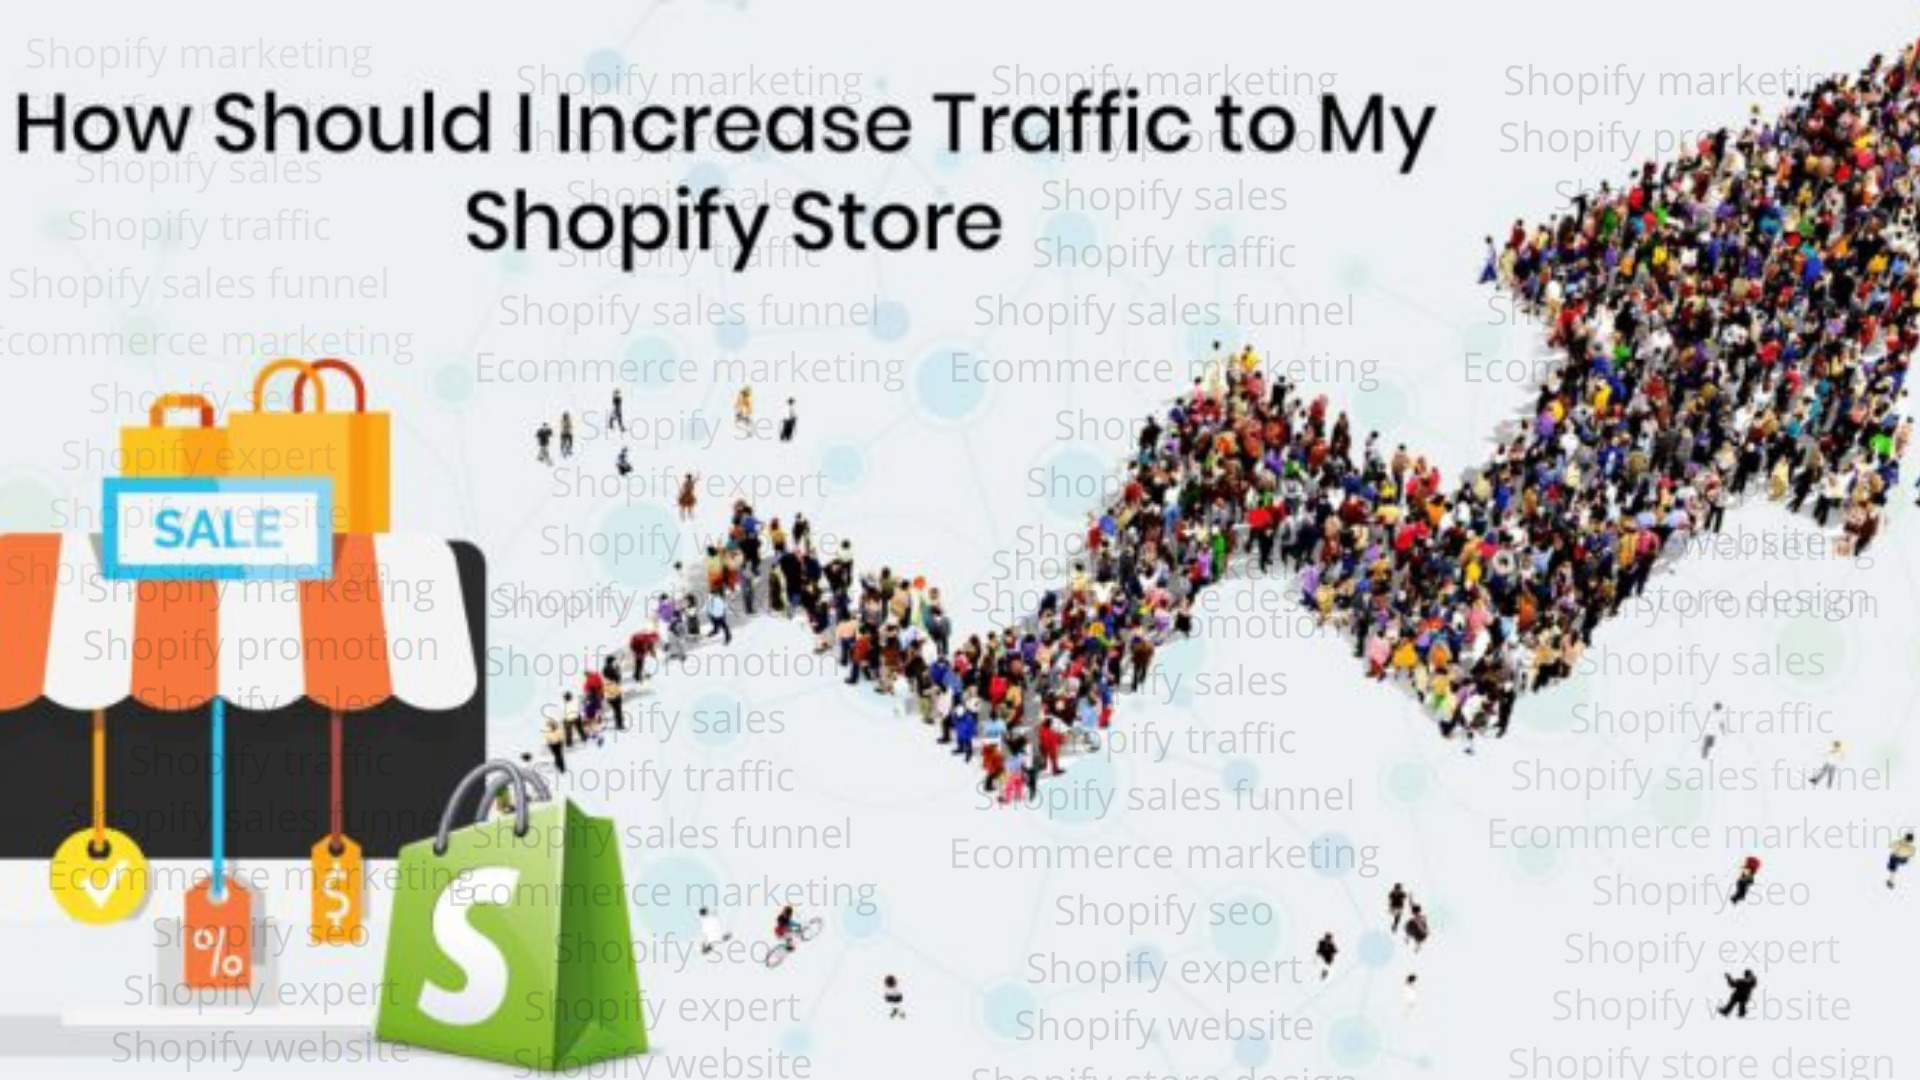 I will do shopify promotion, shopify marketing, etsy promotion to drive traffic, FiverrBox